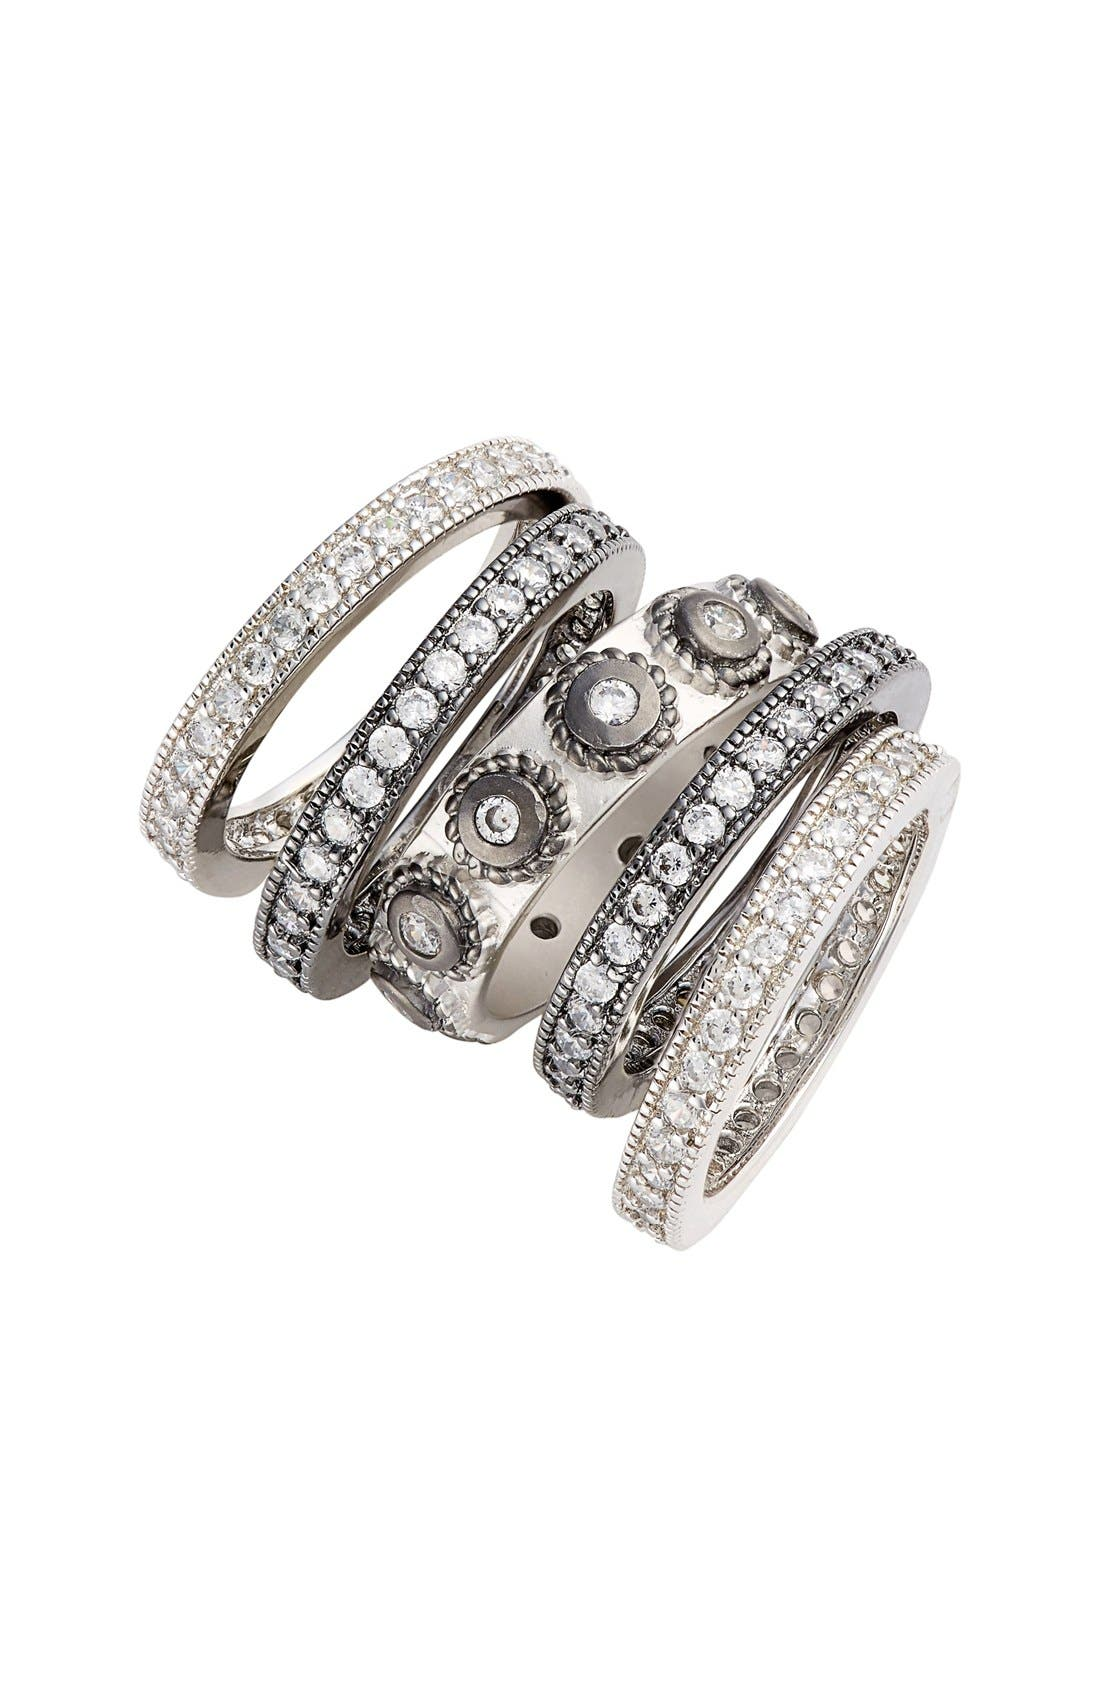 FREIDA ROTHMAN 'Contemporary Deco' Stacking Rings (Set of 5)